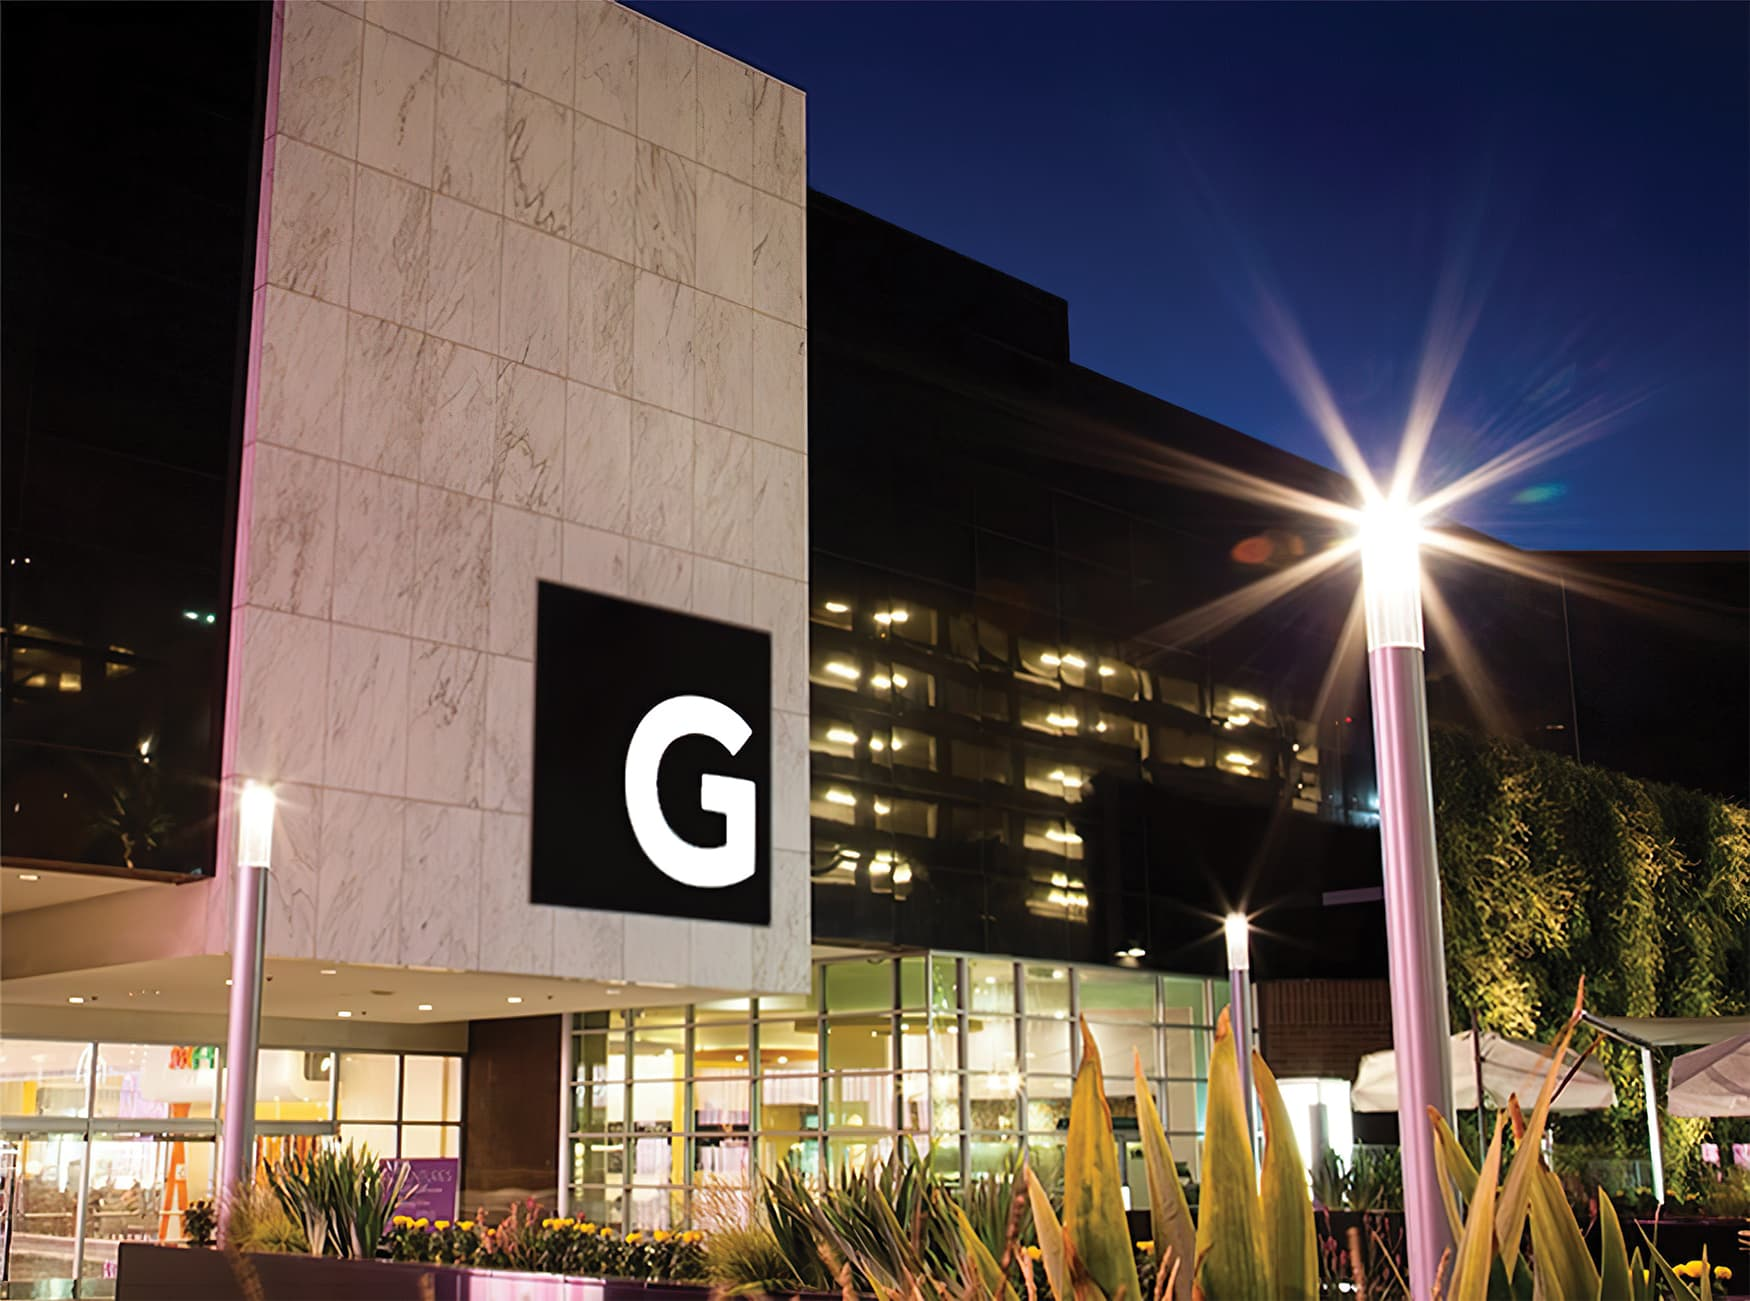 Glendale Galleria. A retail destination in Glendale, California. Project Facade Identity Signage